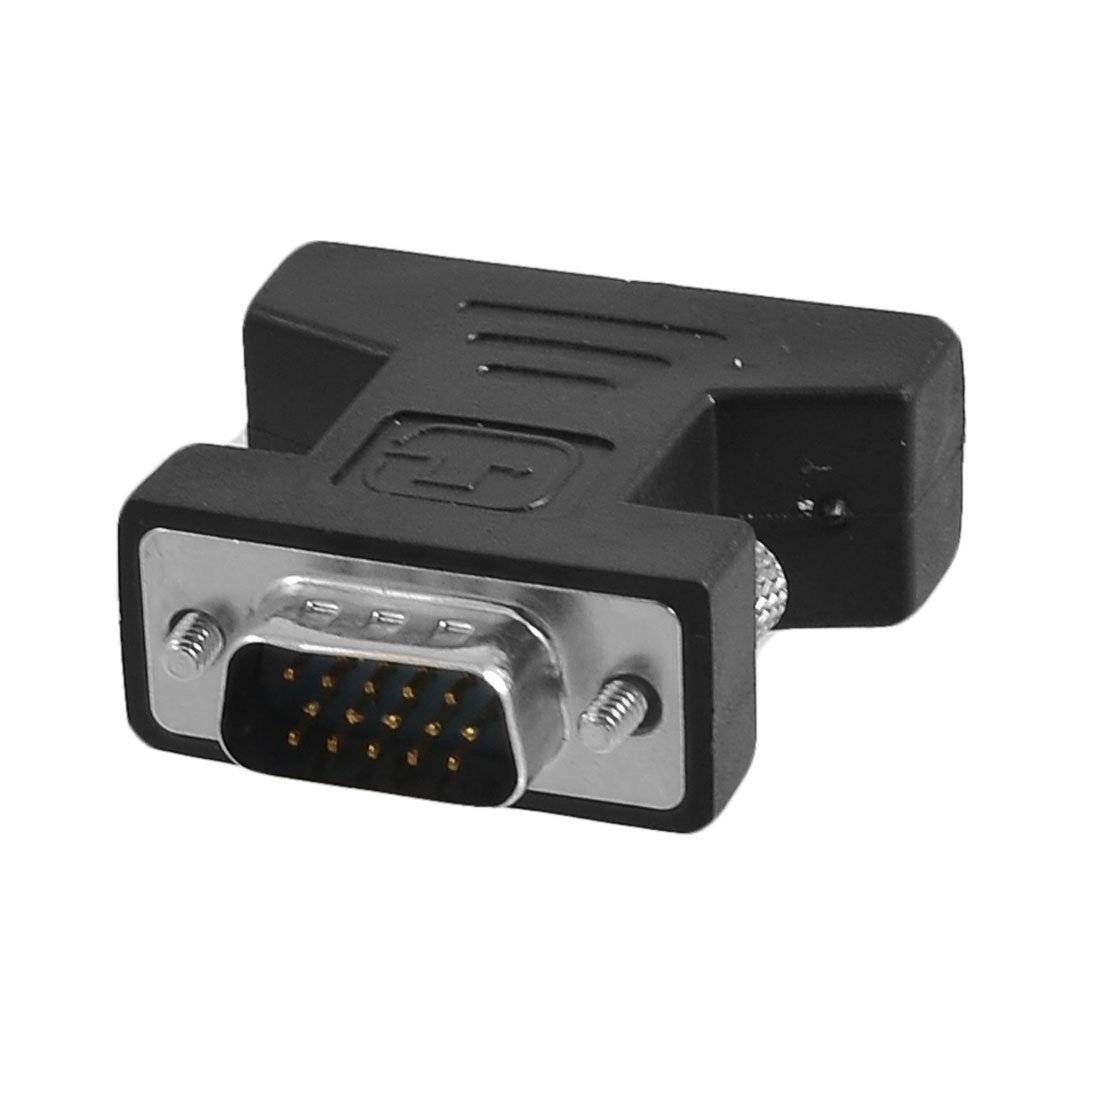 DVI-I 24+5 Pin Female to VGA Male Converter Adapter Connector Black